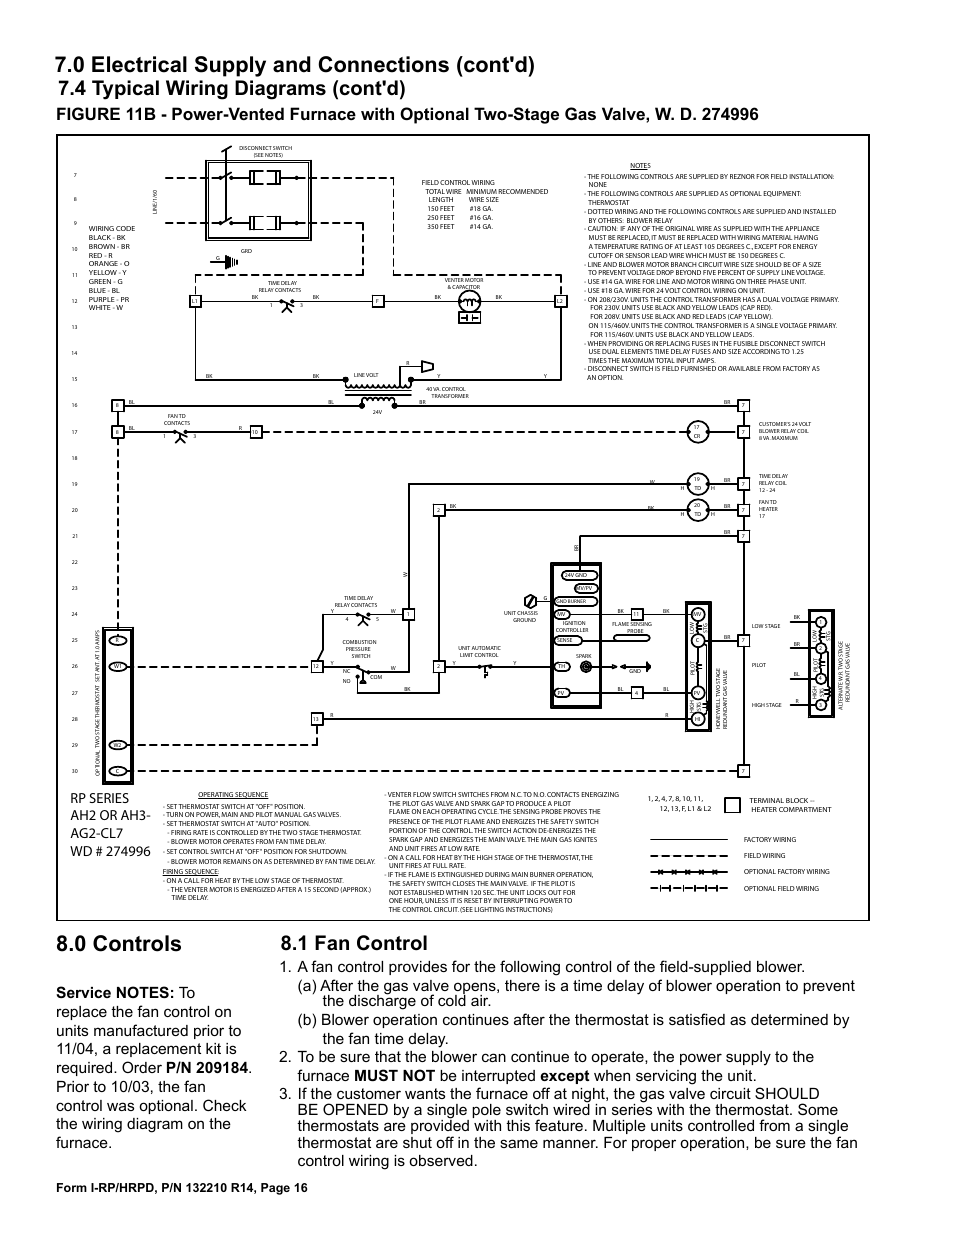 hight resolution of typical control wiring on furnace reznor wiring diagram centre1 fan control 4 typical wiring diagrams